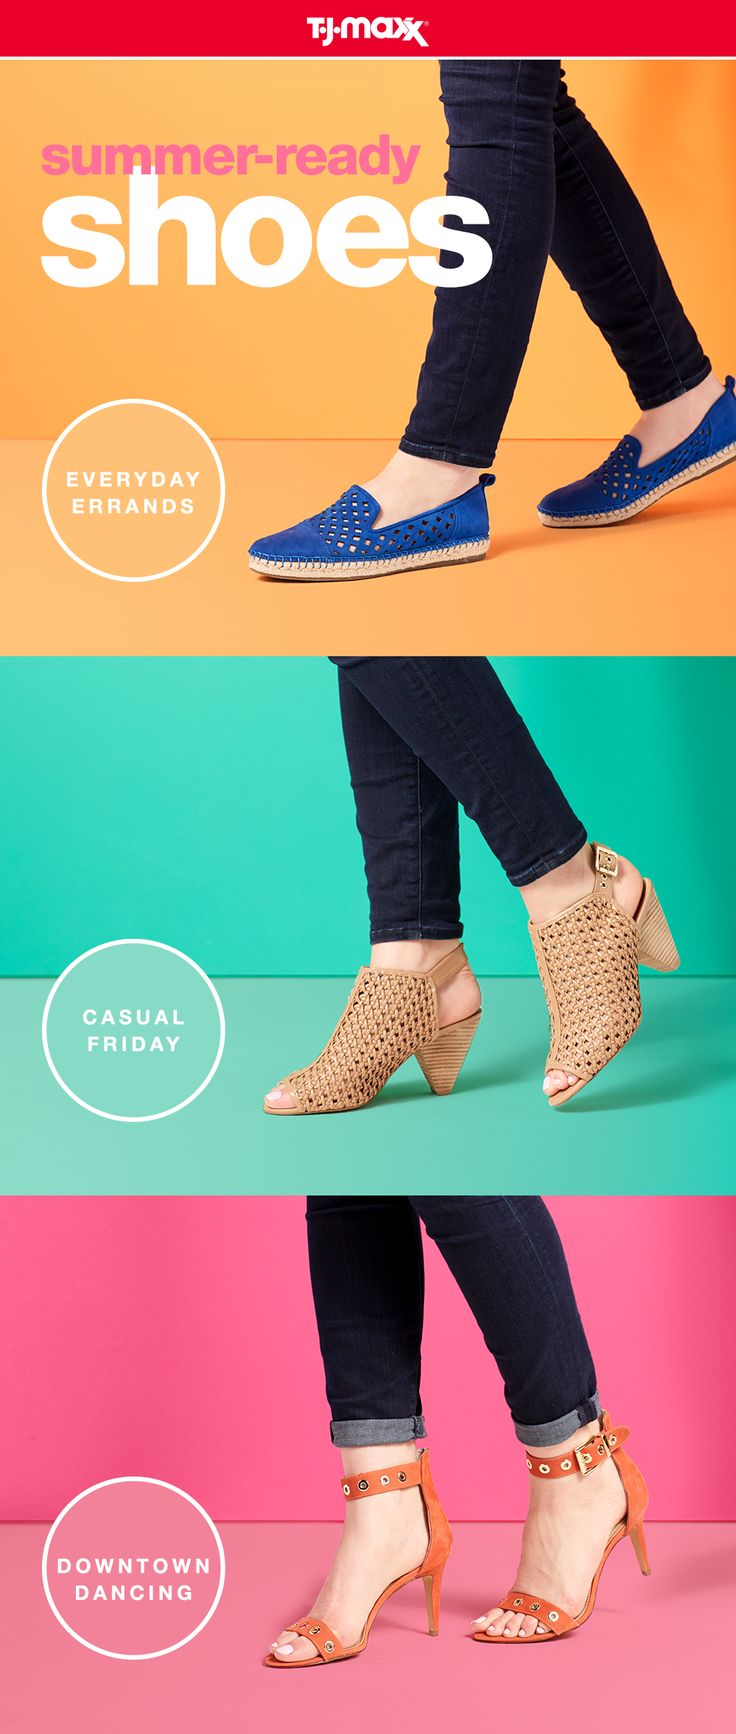 No matter what's on your calendar this summer, T.J.Maxx and tjmaxx.com have fun footwear for every occasion. Grab a pair of comfy flats for an everyday look, open toed booties for a casual look, and step up your shoe game with a pair of stripy sandals. Shop T.J.Maxx for more summer shoes.